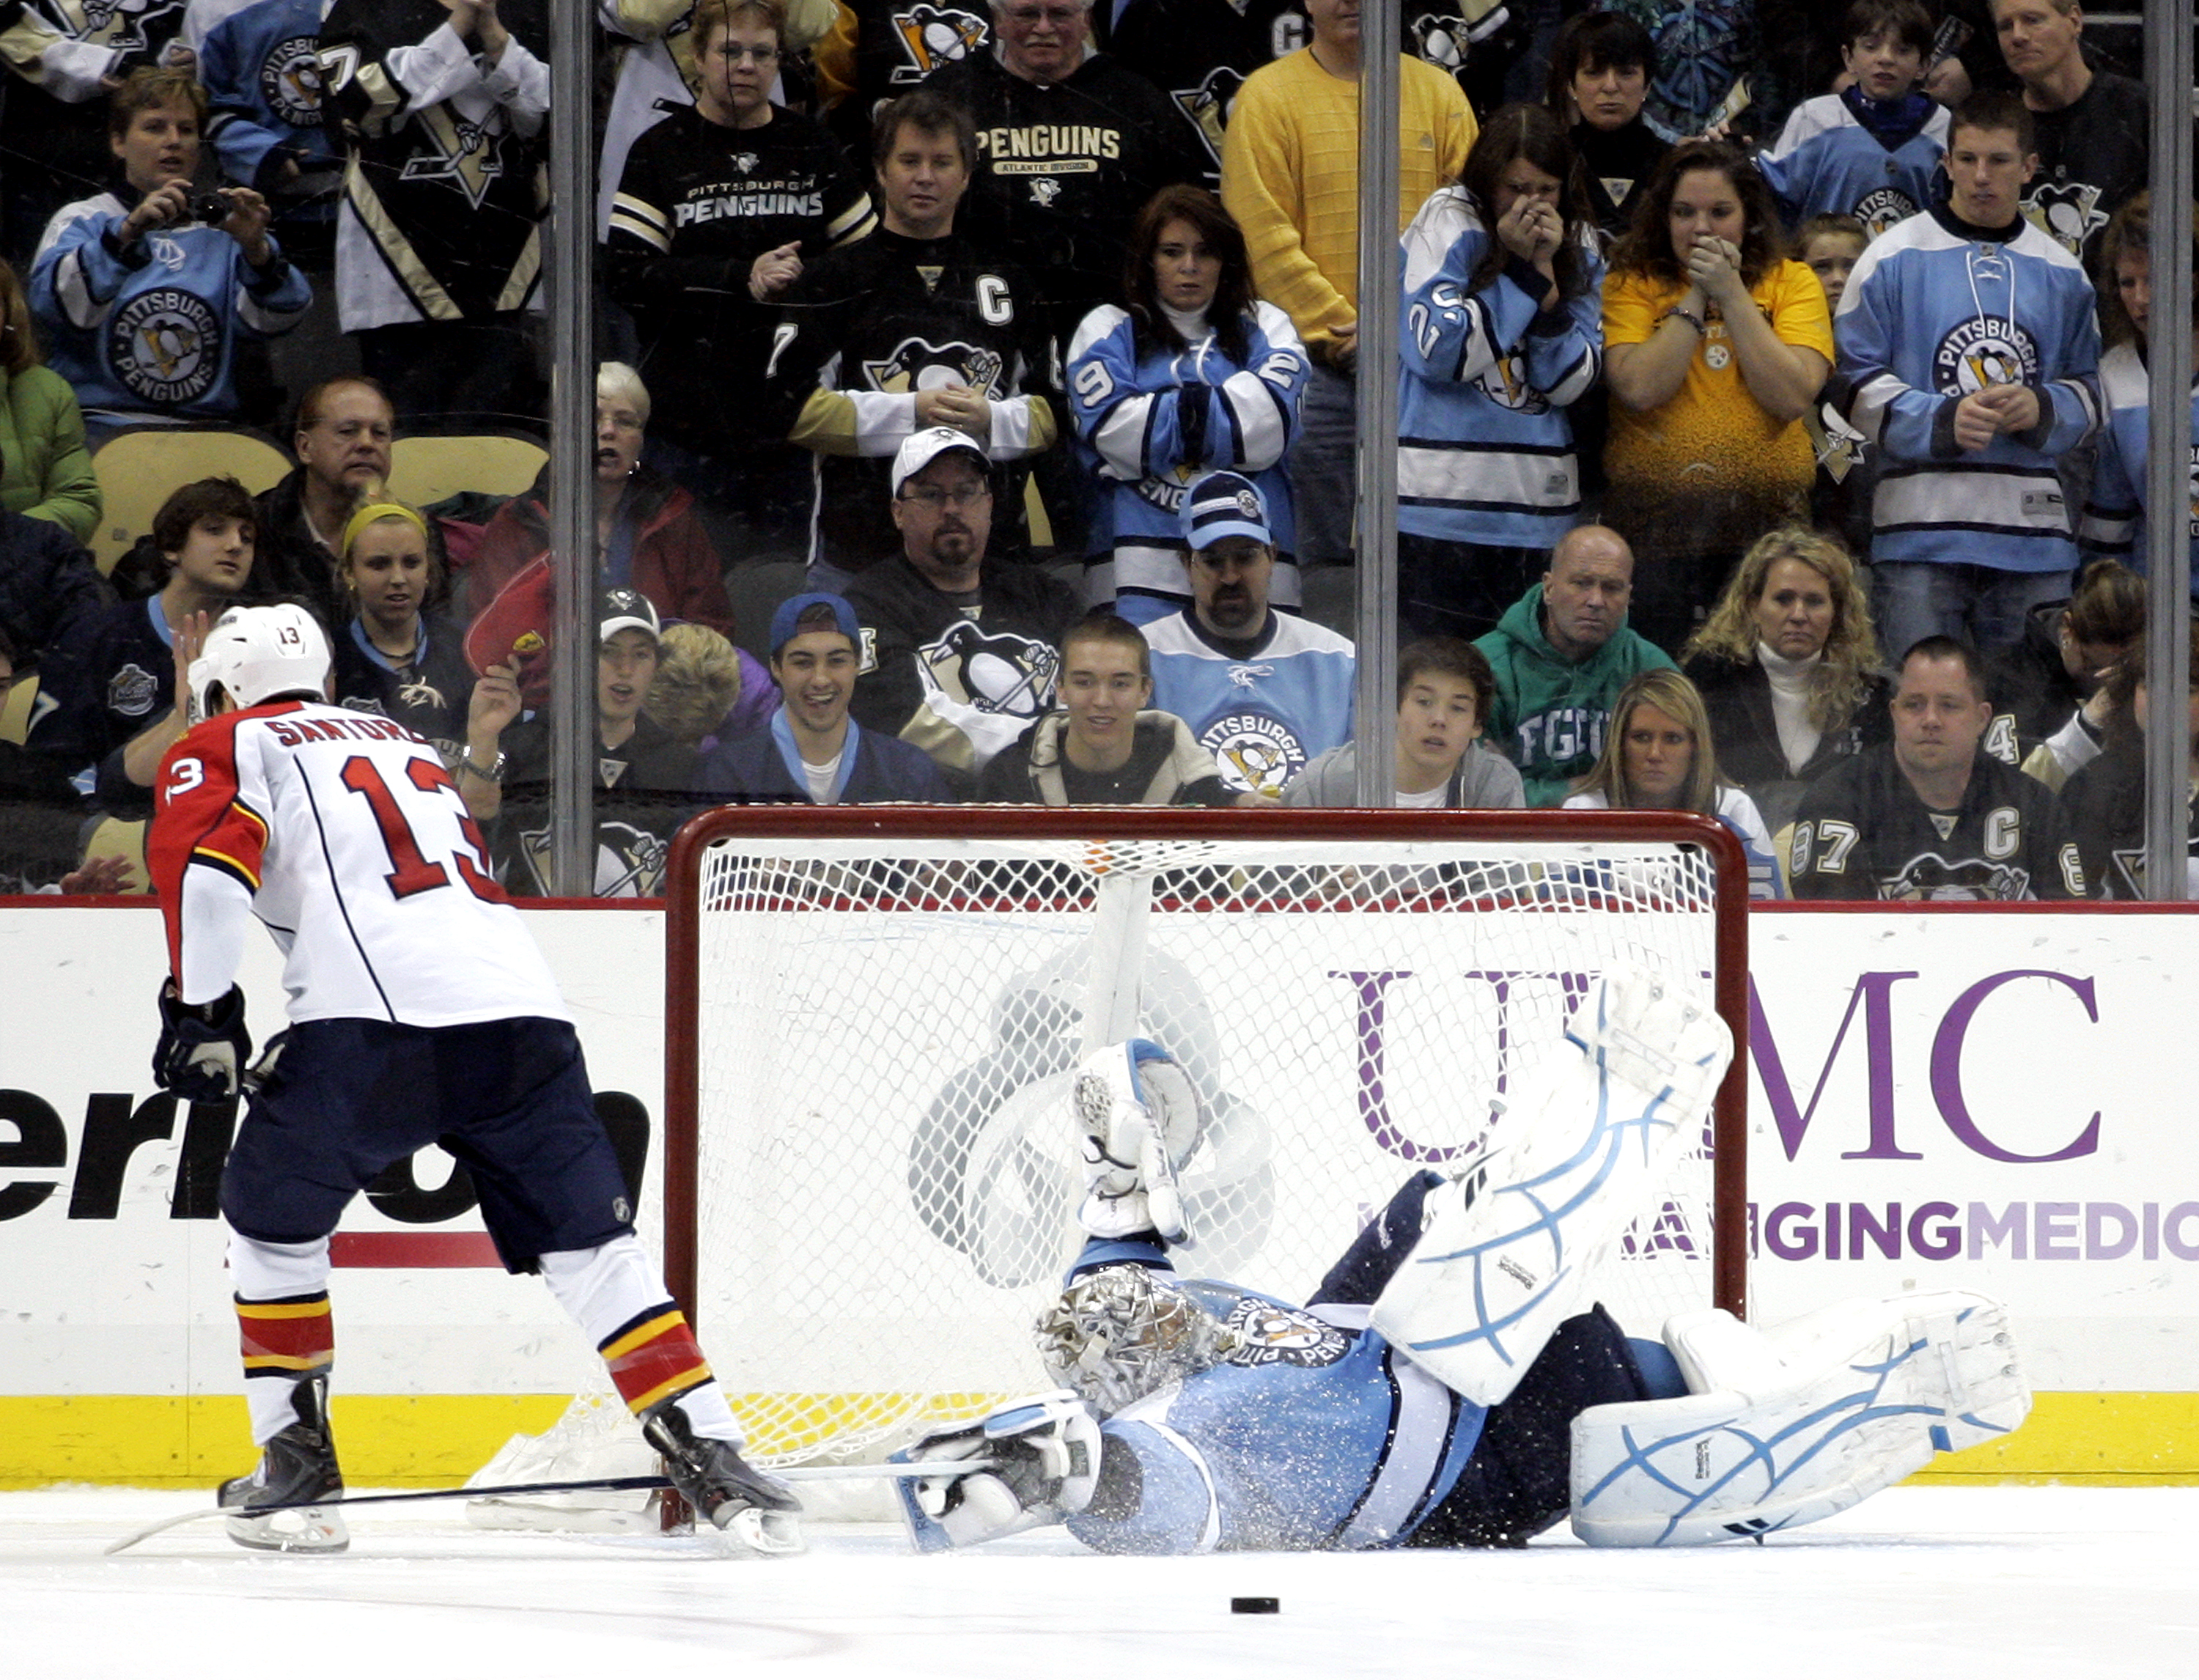 PITTSBURGH, PA - MARCH 27: Marc-Andre Fleury #29 of the Pittsburgh Penguins makes a save against Mike Santorelli #13 of the Florida Panthers during the shootout at Consol Energy Center on March 27, 2011 in Pittsburgh, Pennsylvania. The Penguins defeated t